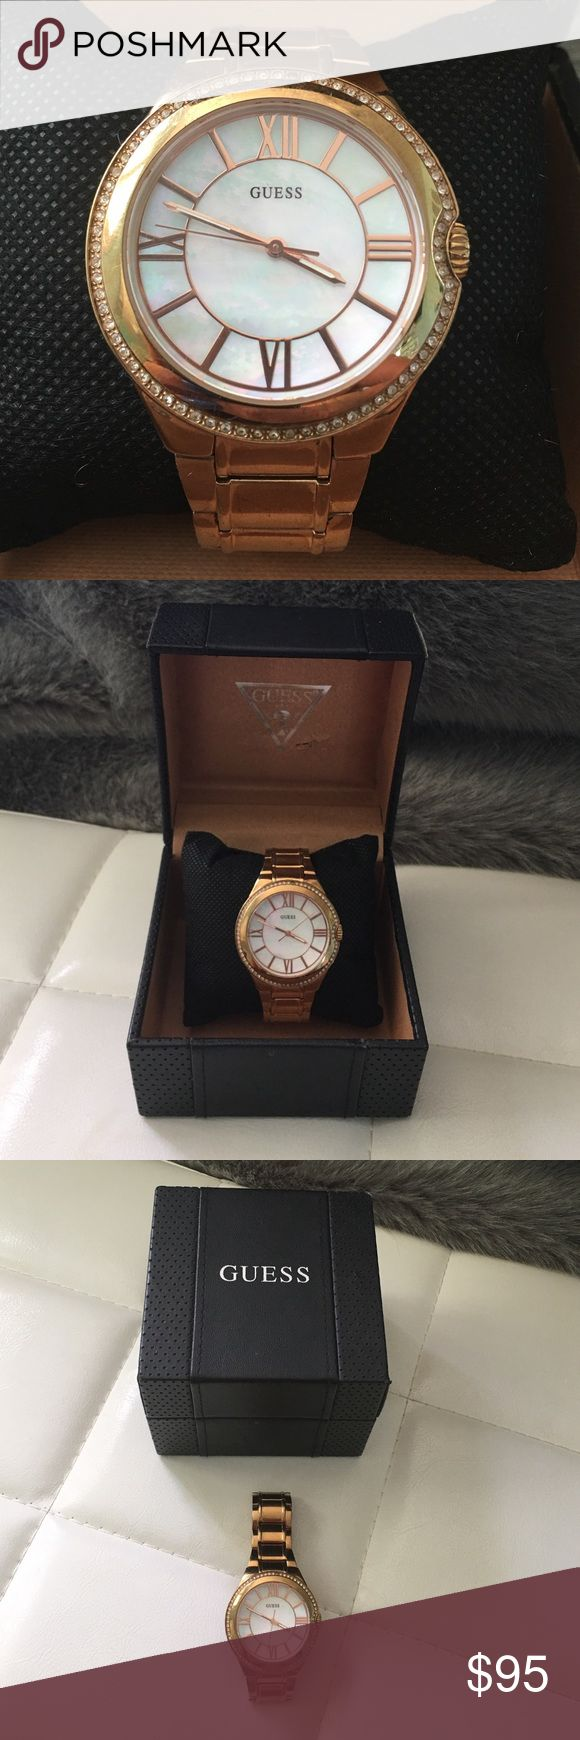 Guess Rose Gold Watch 100% Authentic Guess Women's Rose Gold Watch. Beautiful Opal Pearl face plate. Preloved but in amazing condition. Includes original Guess watch box it was purchase in. Originally paid $160! Guess Accessories Watches